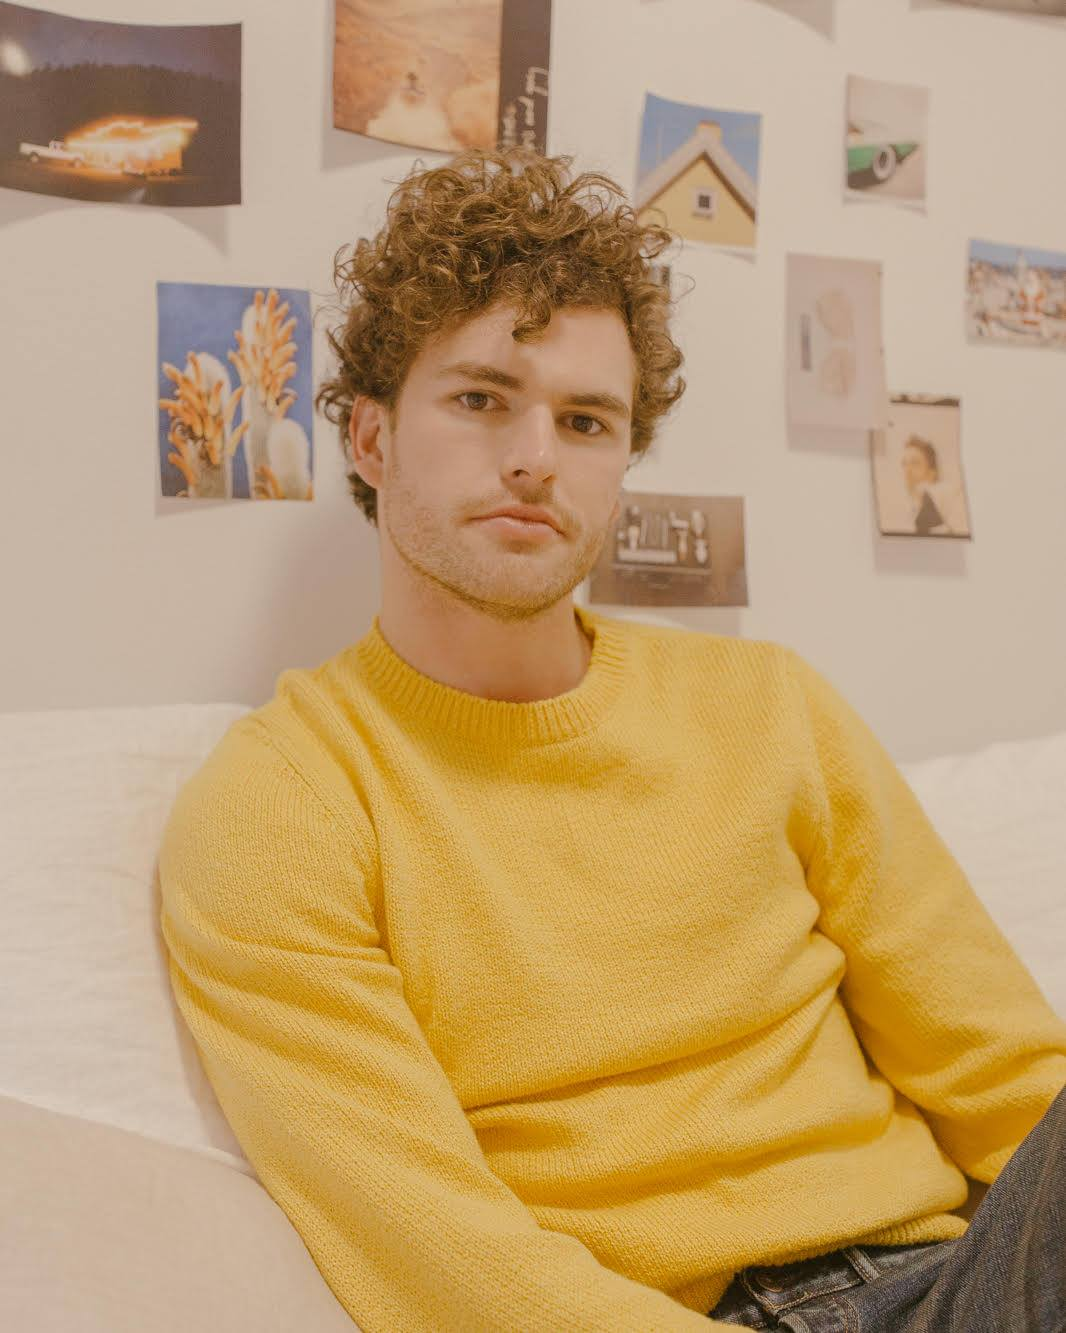 Vance Joy interview with Flavourmag